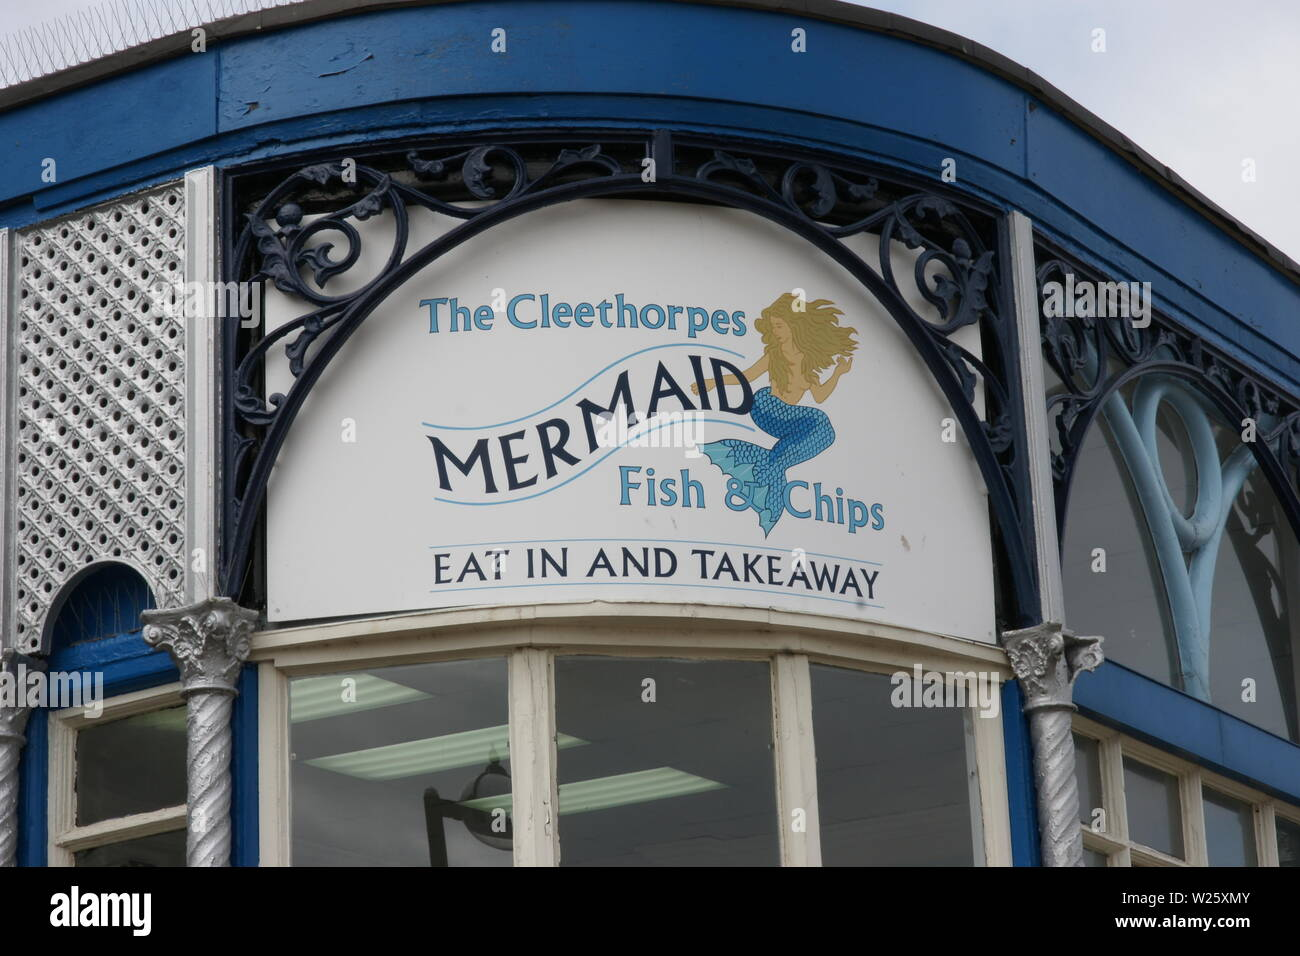 grimsby fish and chips - Stock Image